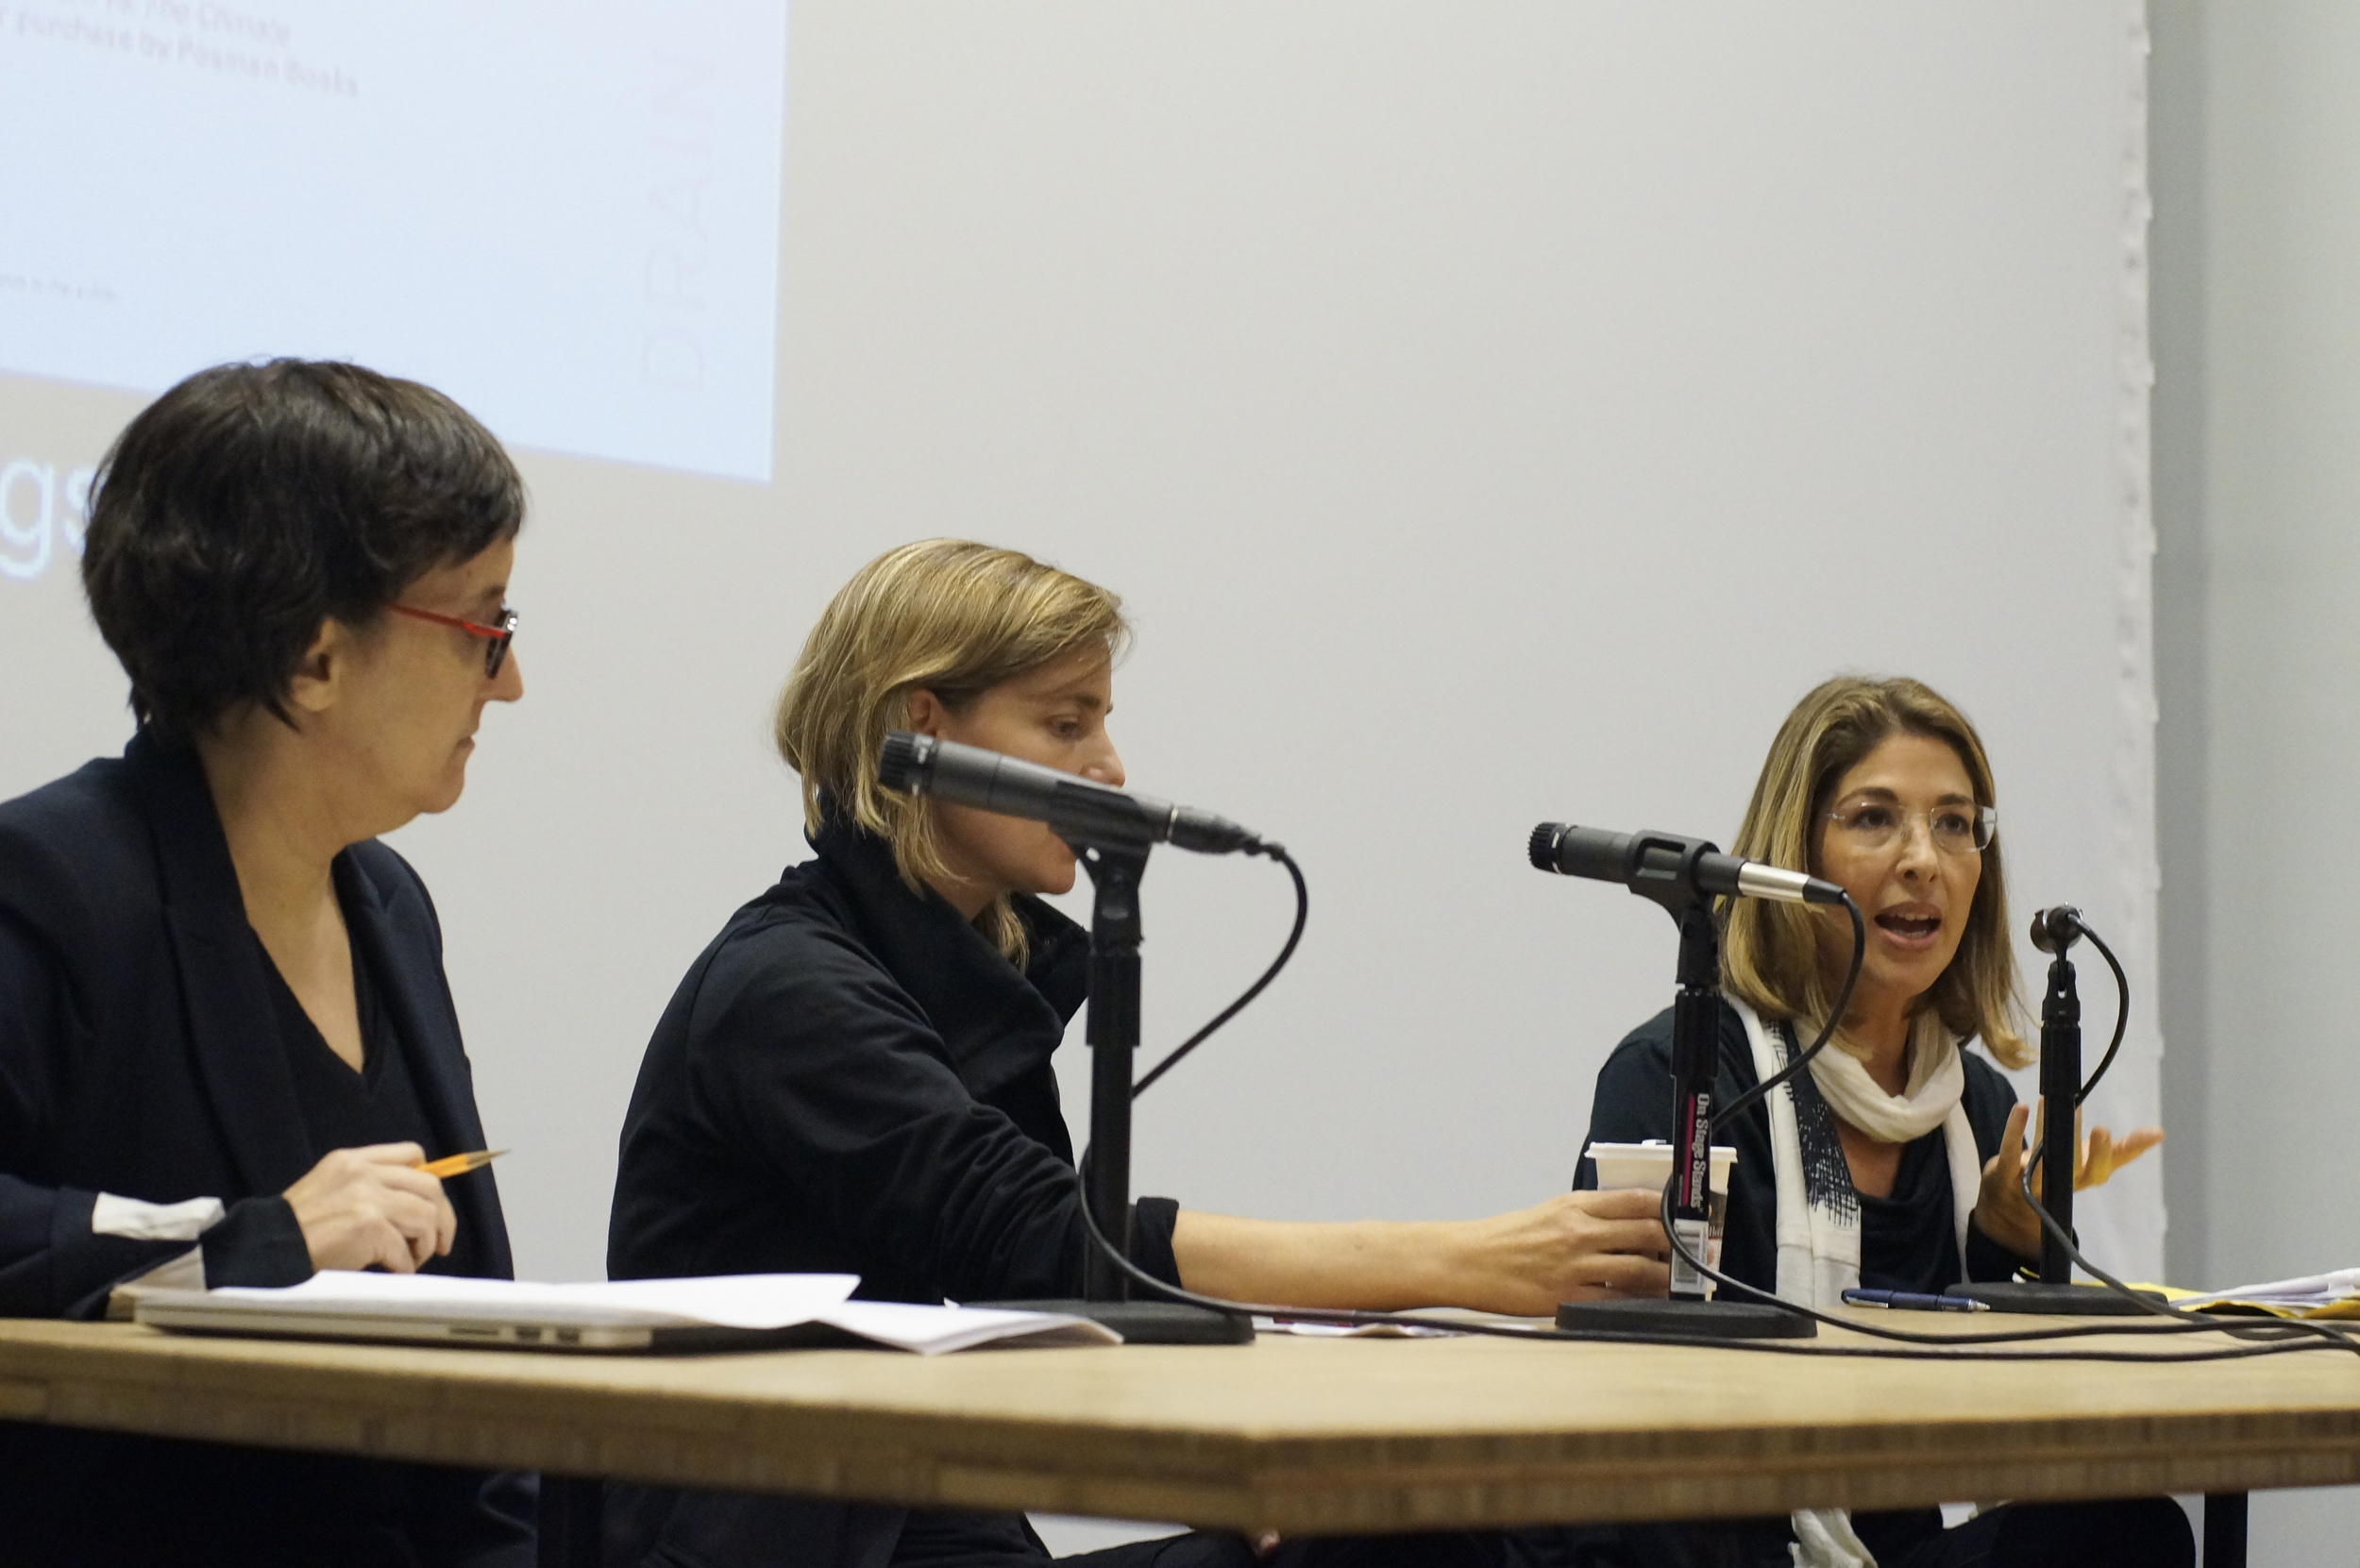 Laura Kurgan, Kate Orff, and Naomi Klein discuss planning for climate change, September 24, 2014, Wood Auditorium, Columbia University.